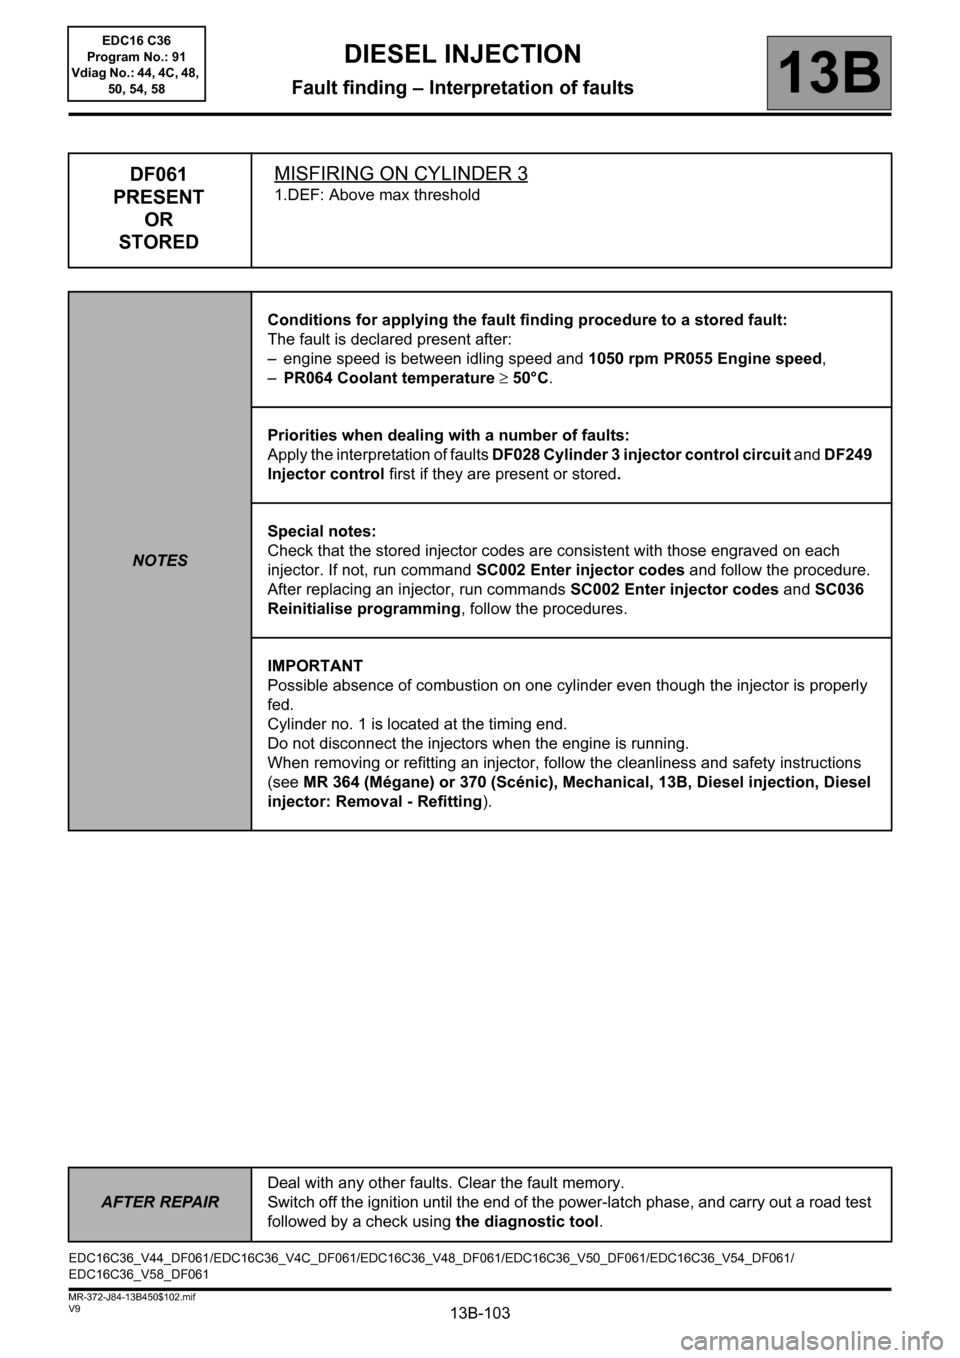 RENAULT SCENIC 2011 J95 / 3.G Engine And Peripherals EDC16C36 Workshop Manual, Page 103